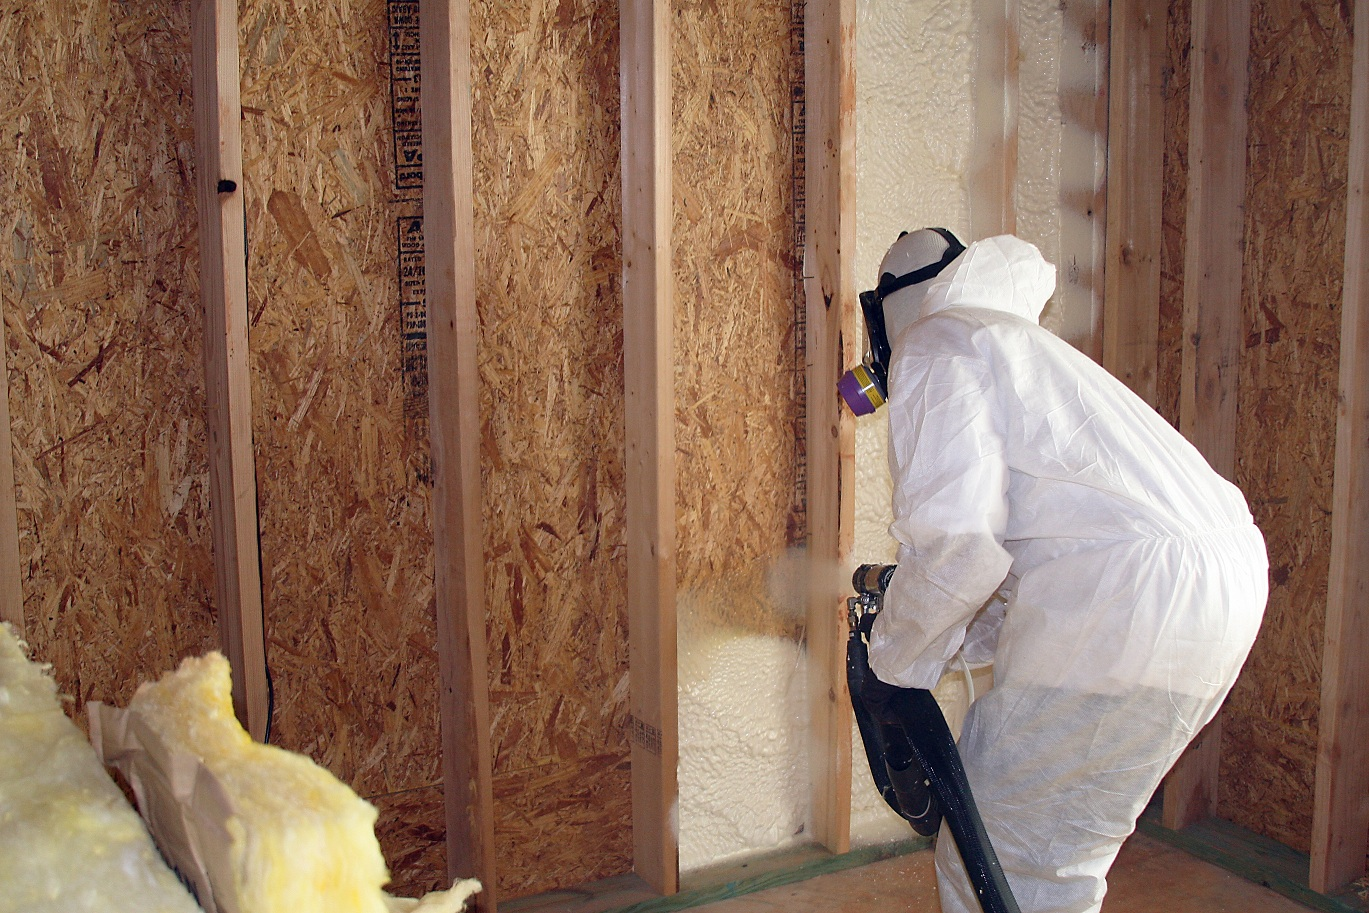 Installing spray foam insulation to your home spray foam spray foam insulation begins with expertise professional spray foam installation the best spray foam insulation solutioingenieria